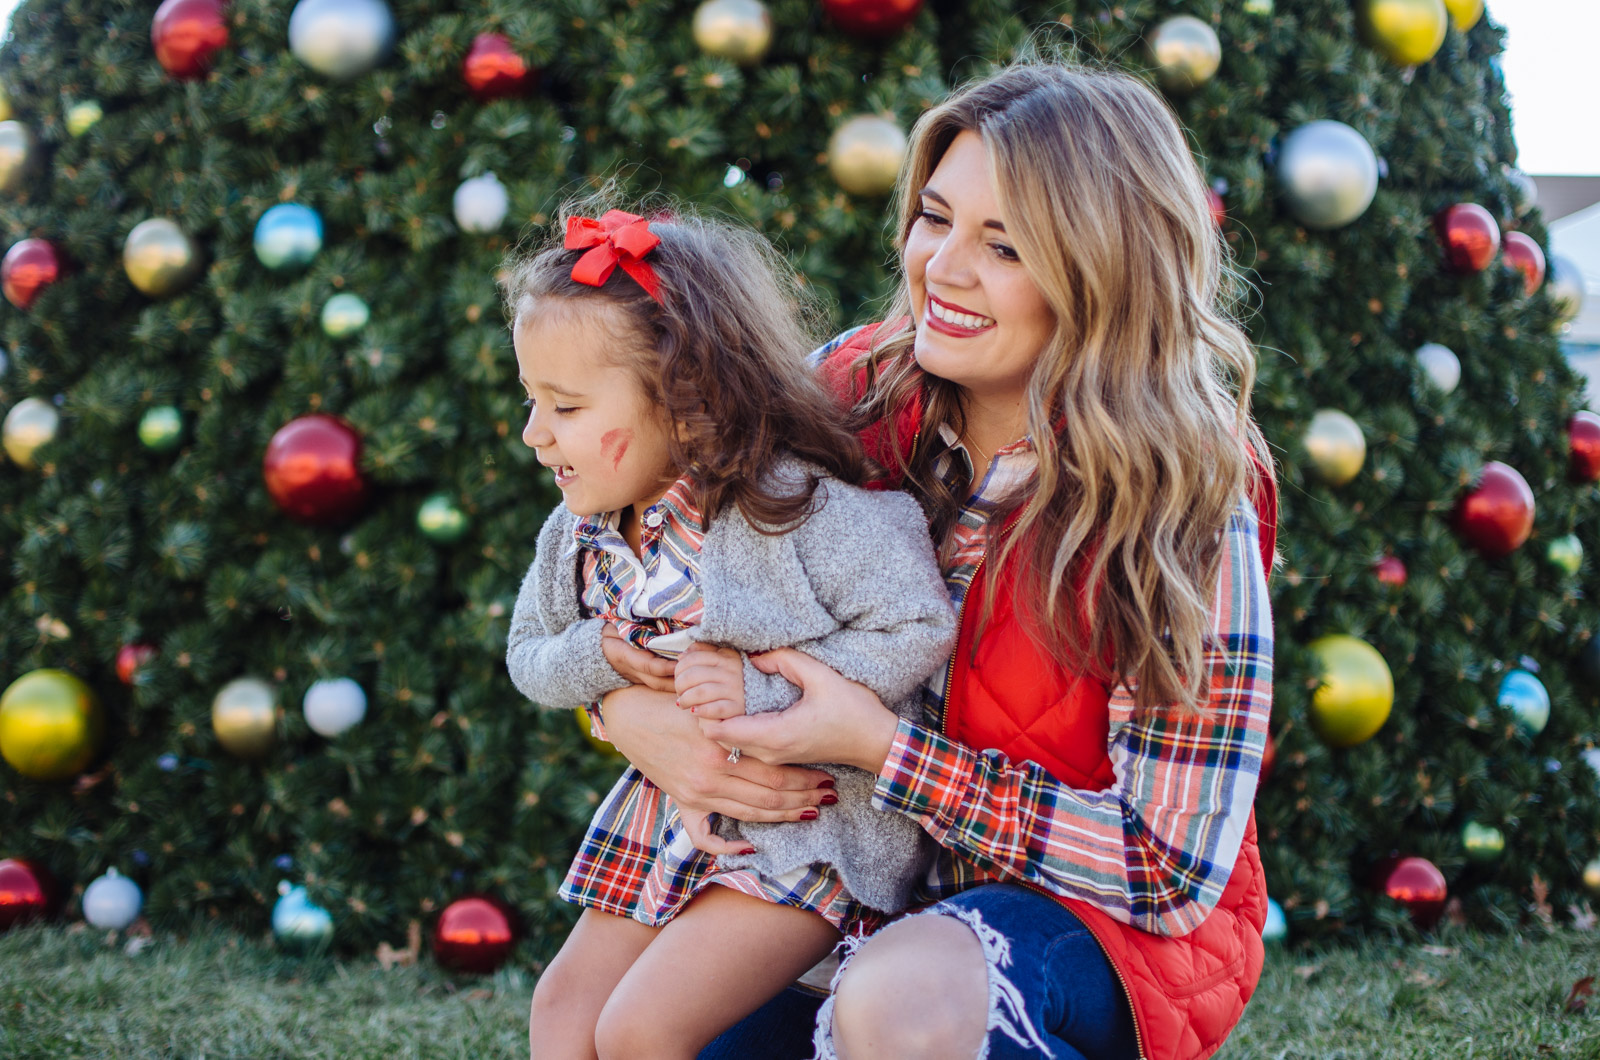 mommy me outfits christmas with matching christmas dresses for mom and daughter